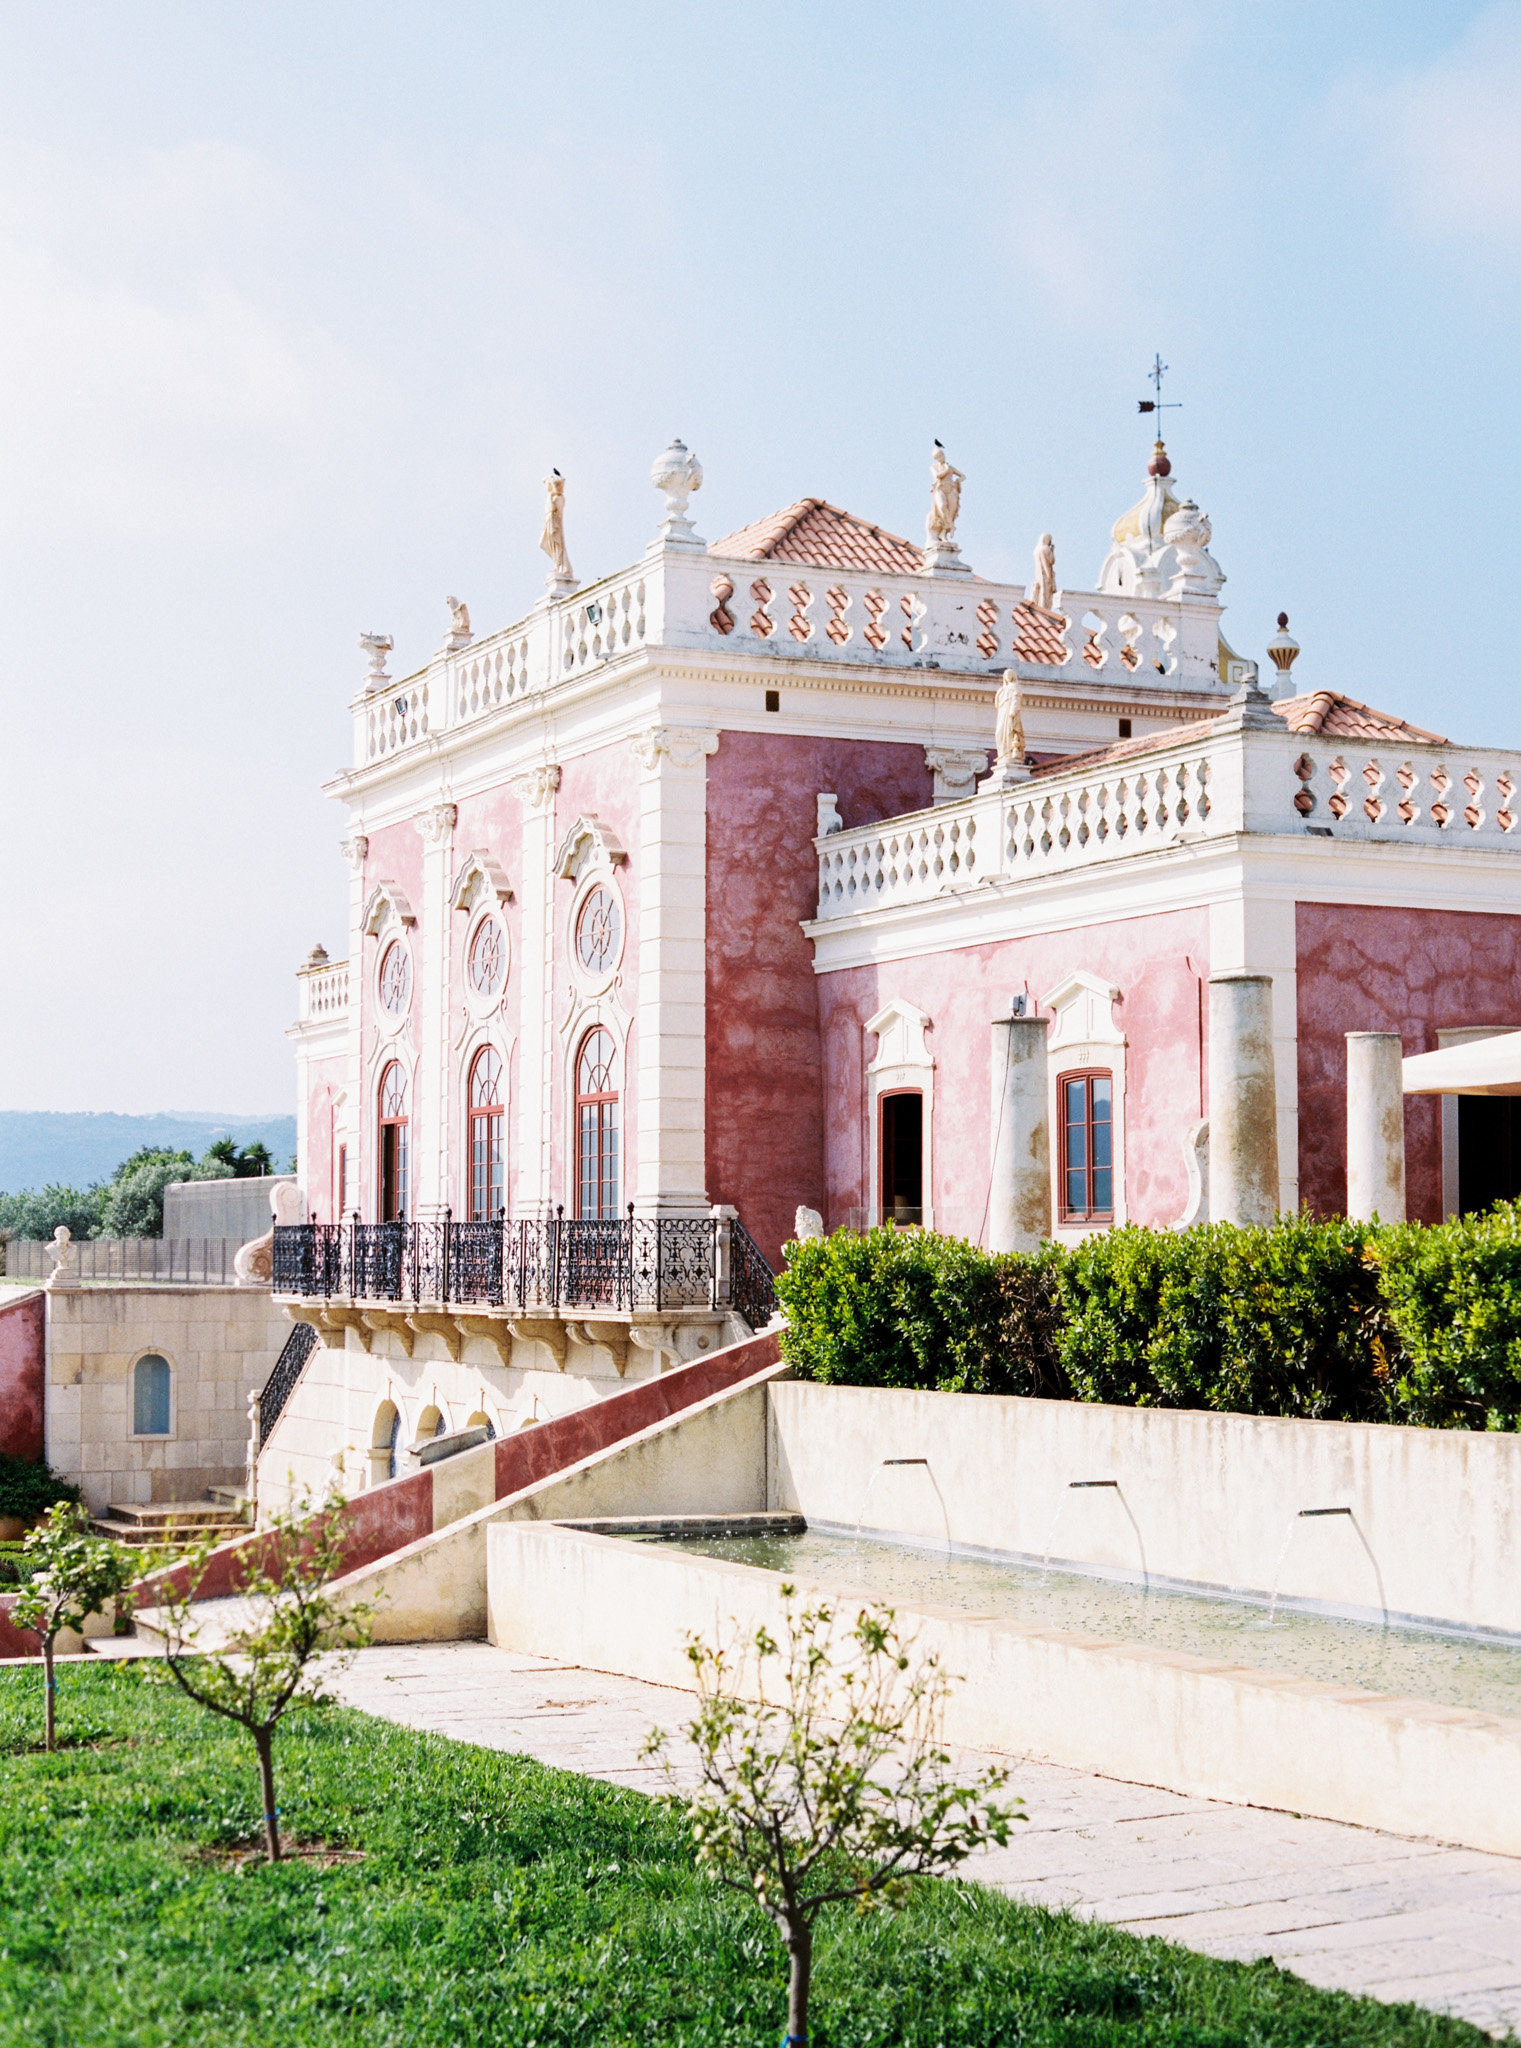 Destination wedding venue, Estoi Palace in the south of Portugal